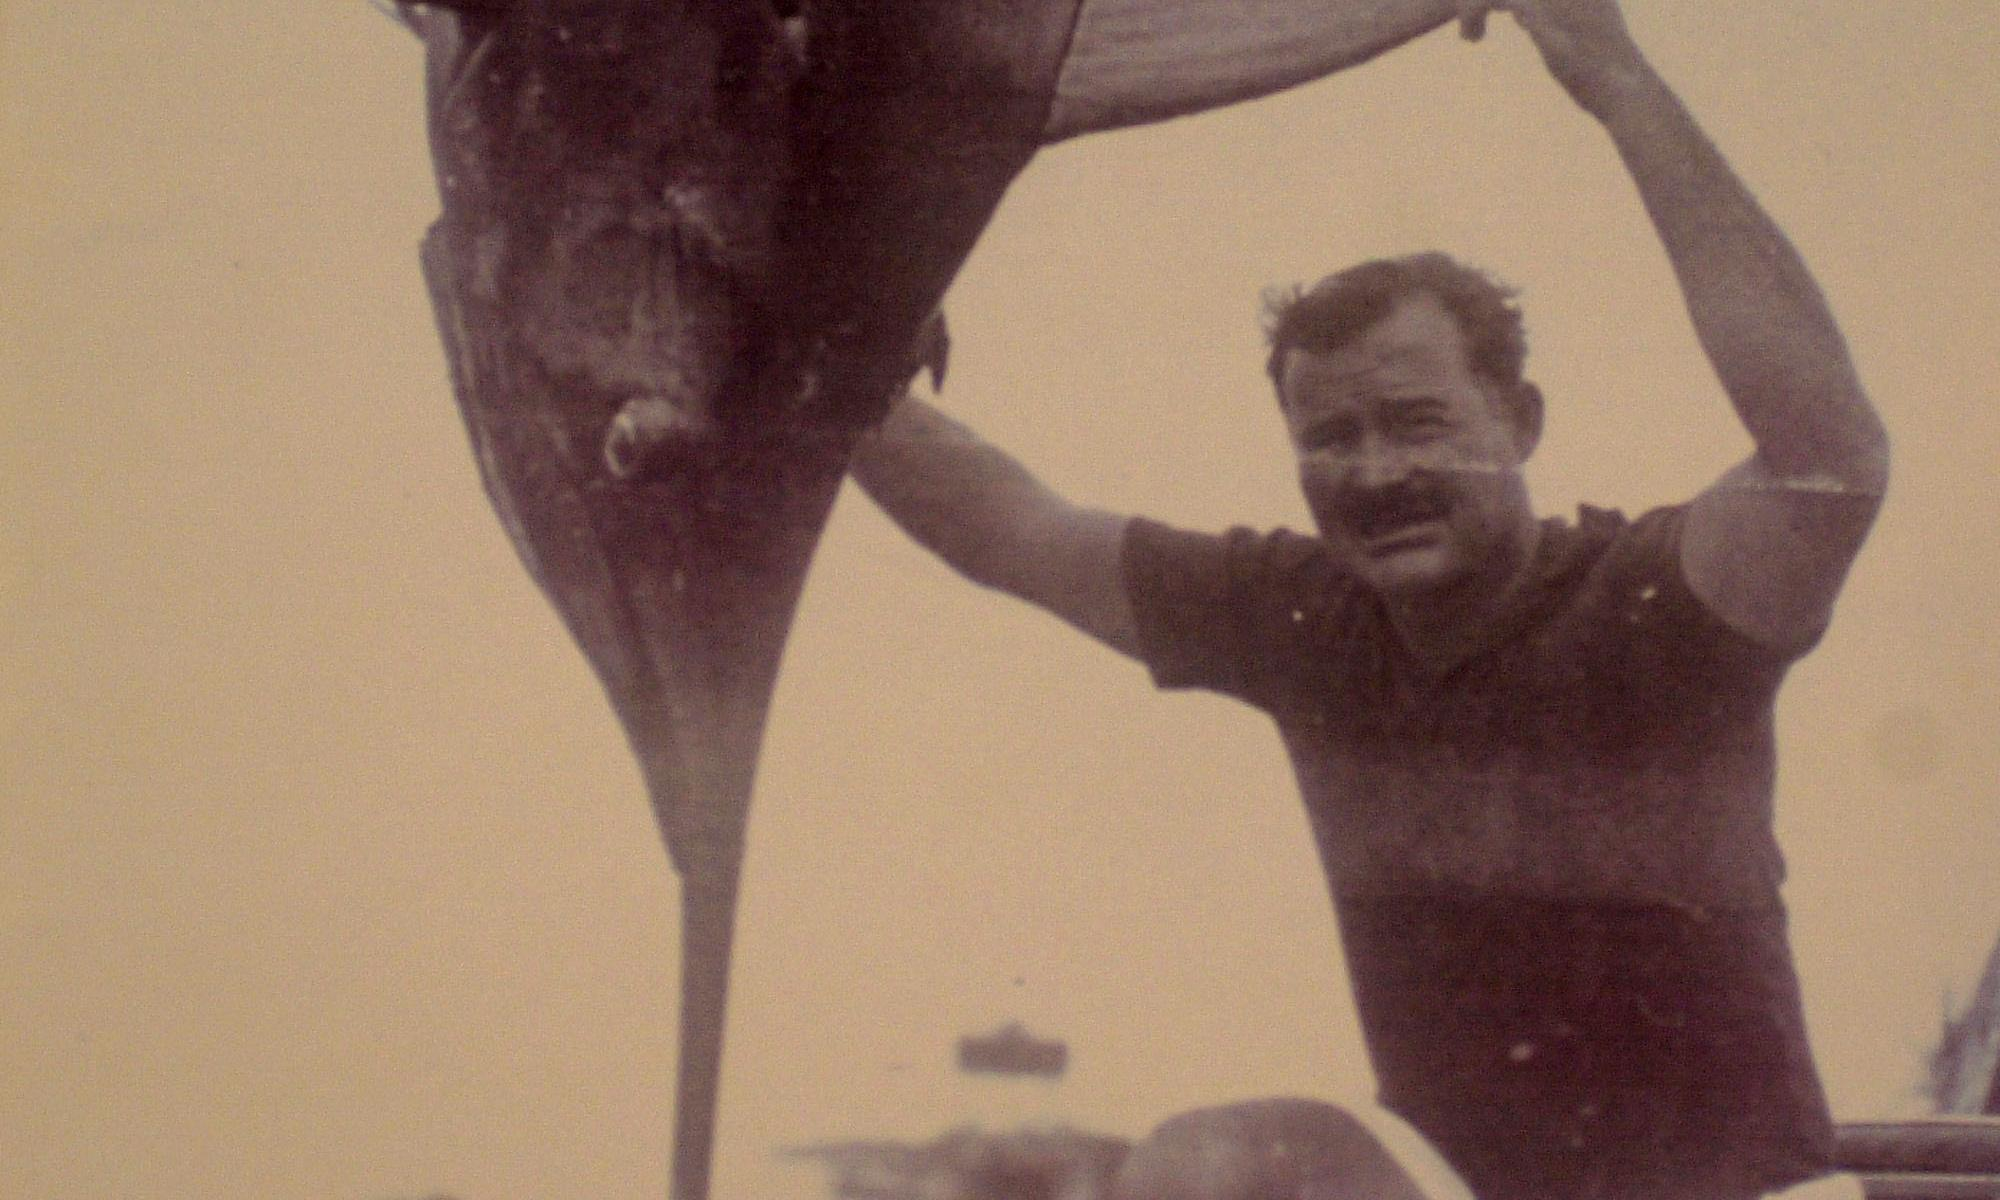 Hemingway's Old Man and the Sea fishing trip letter sold for $28,000